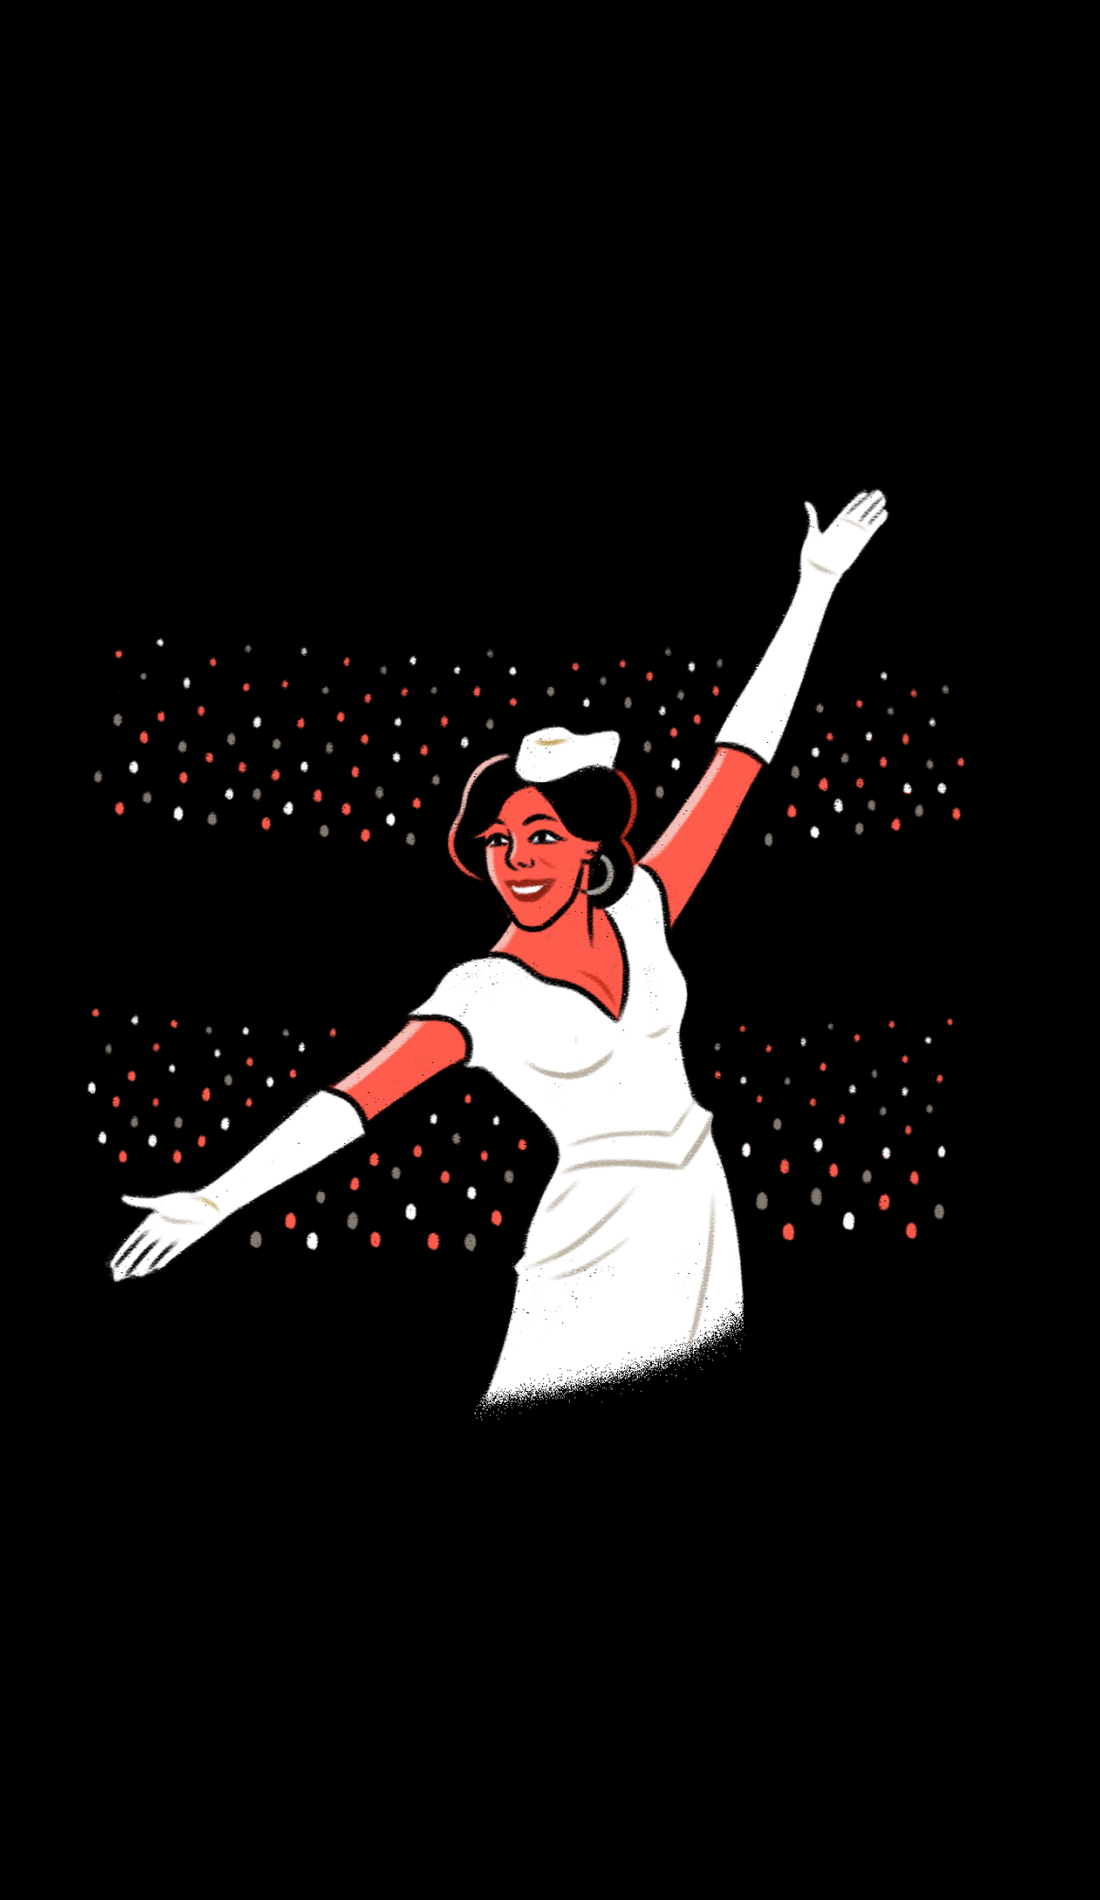 A Elf - The Musical live event